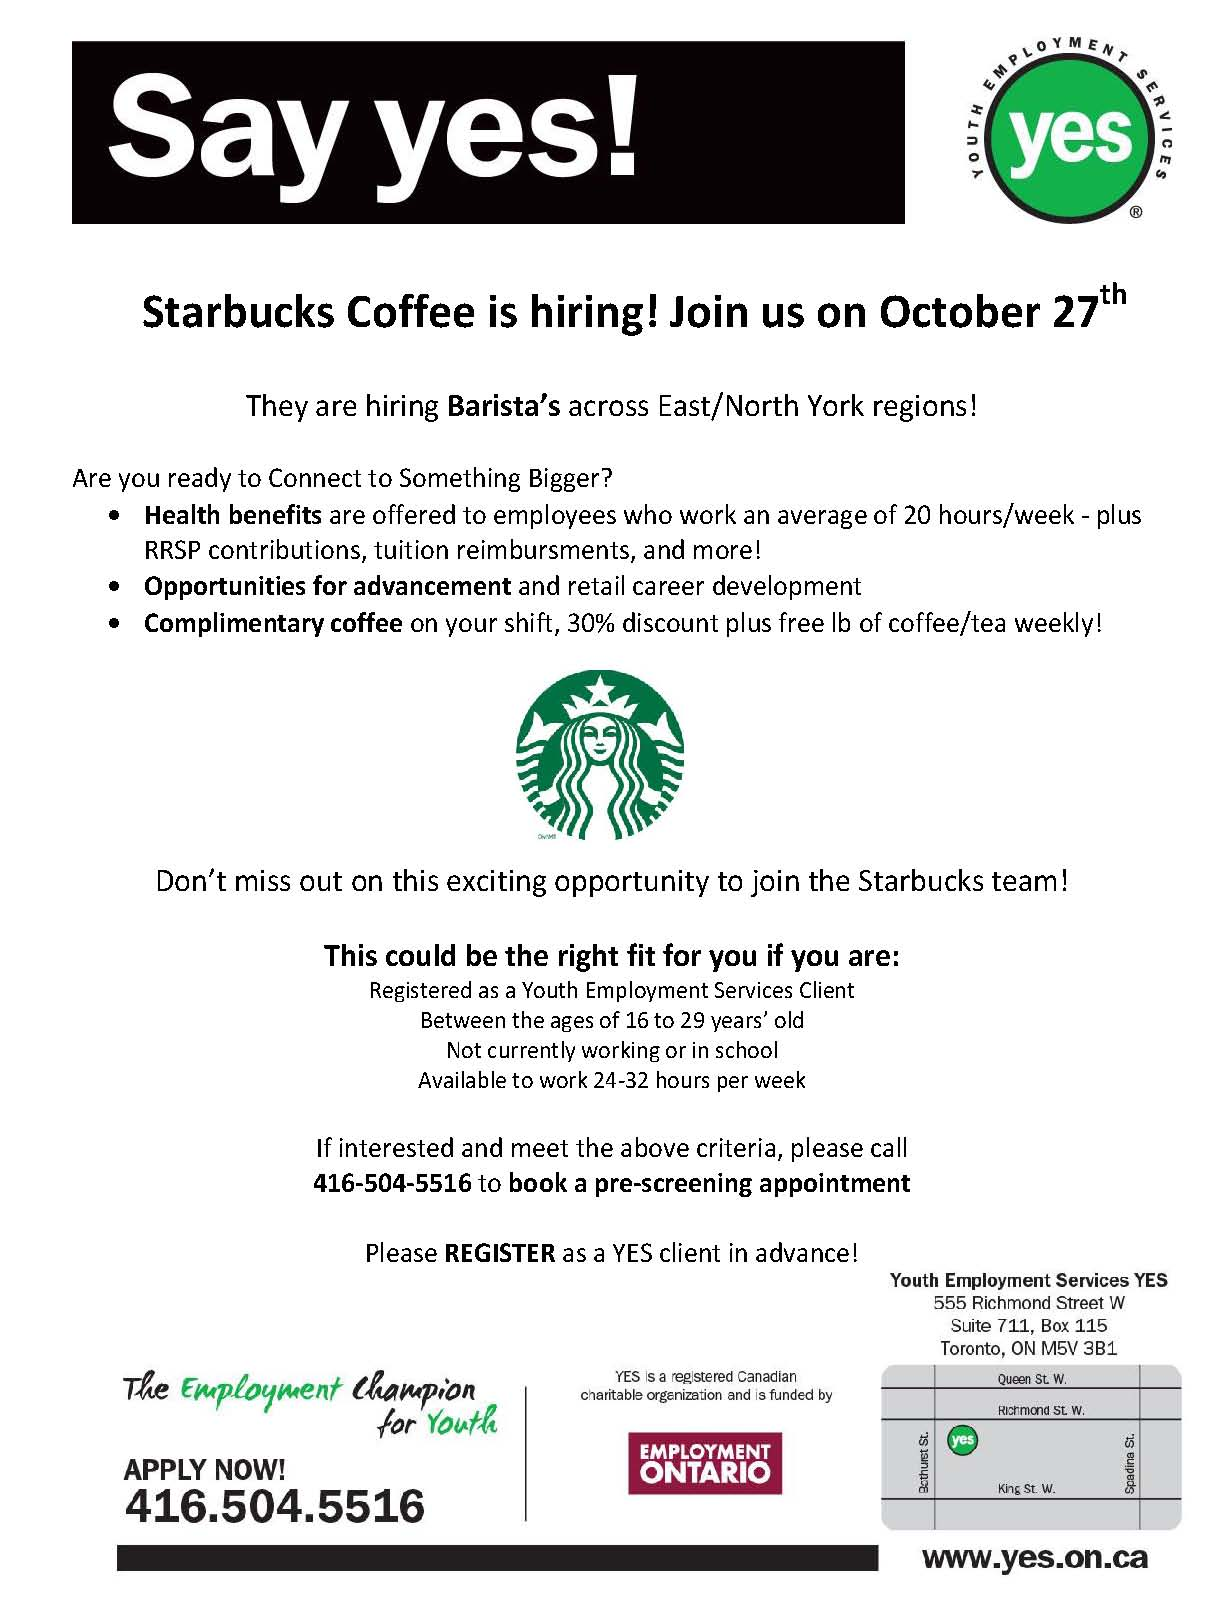 Starbucks Coffee is Hiring on October 27th | Youth Employment